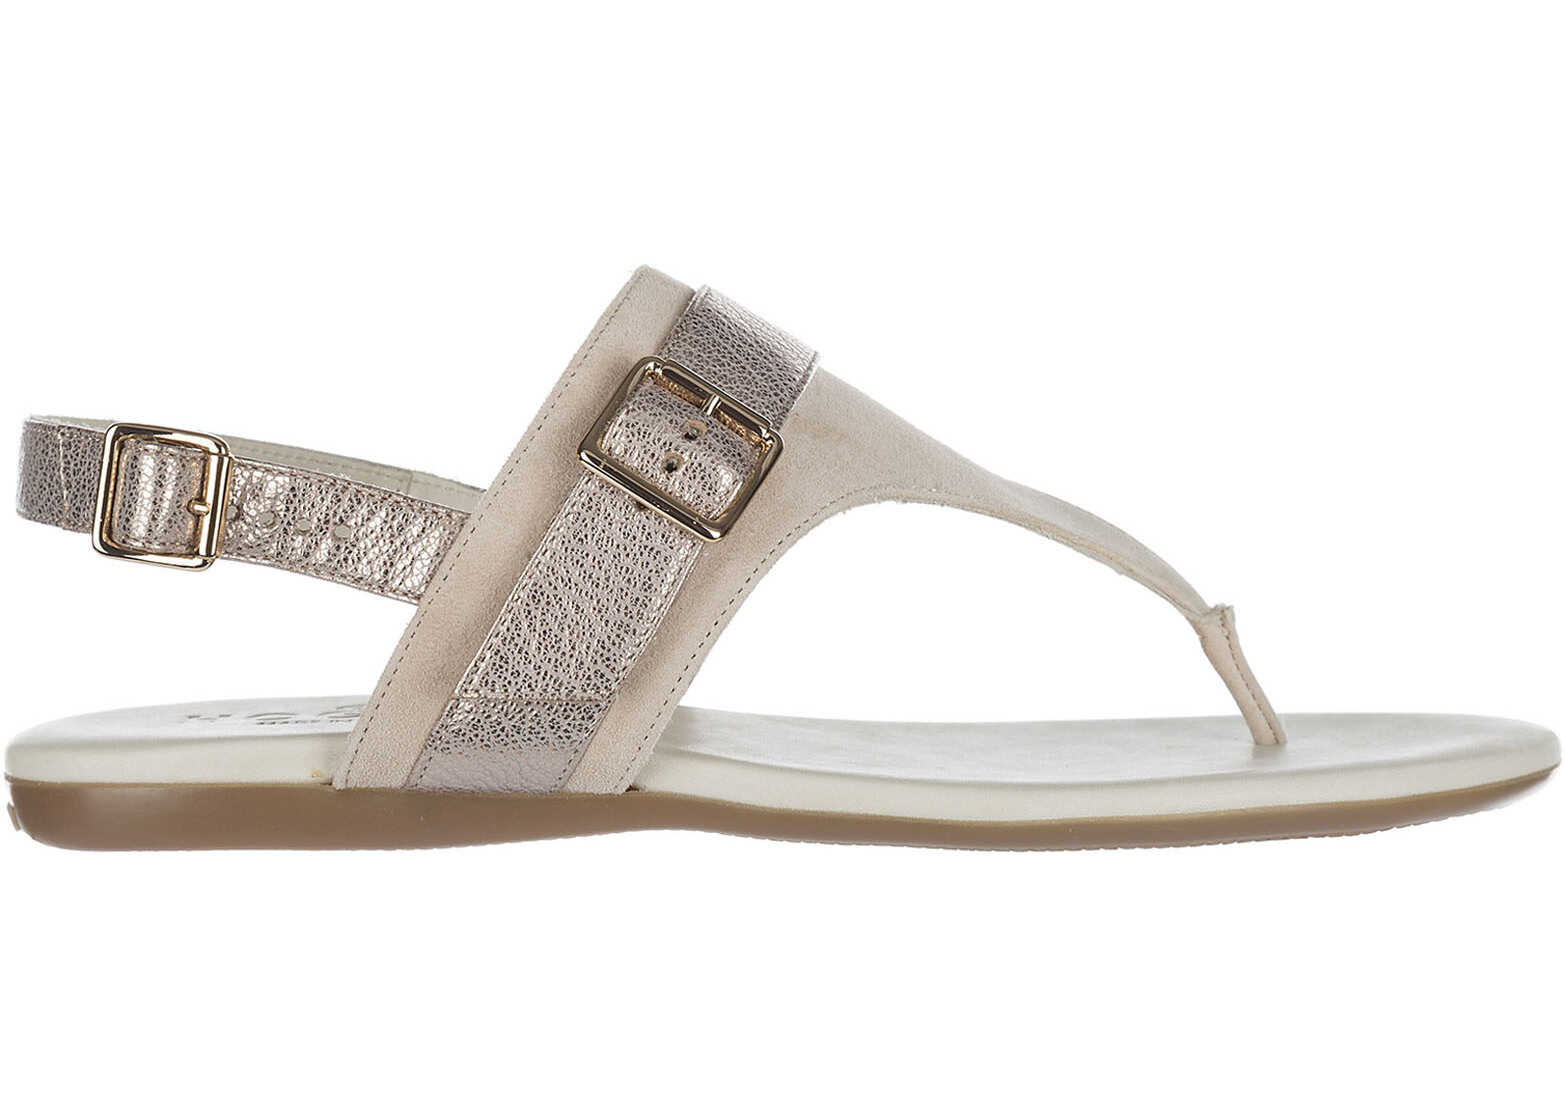 Hogan Suede Sandals Beige